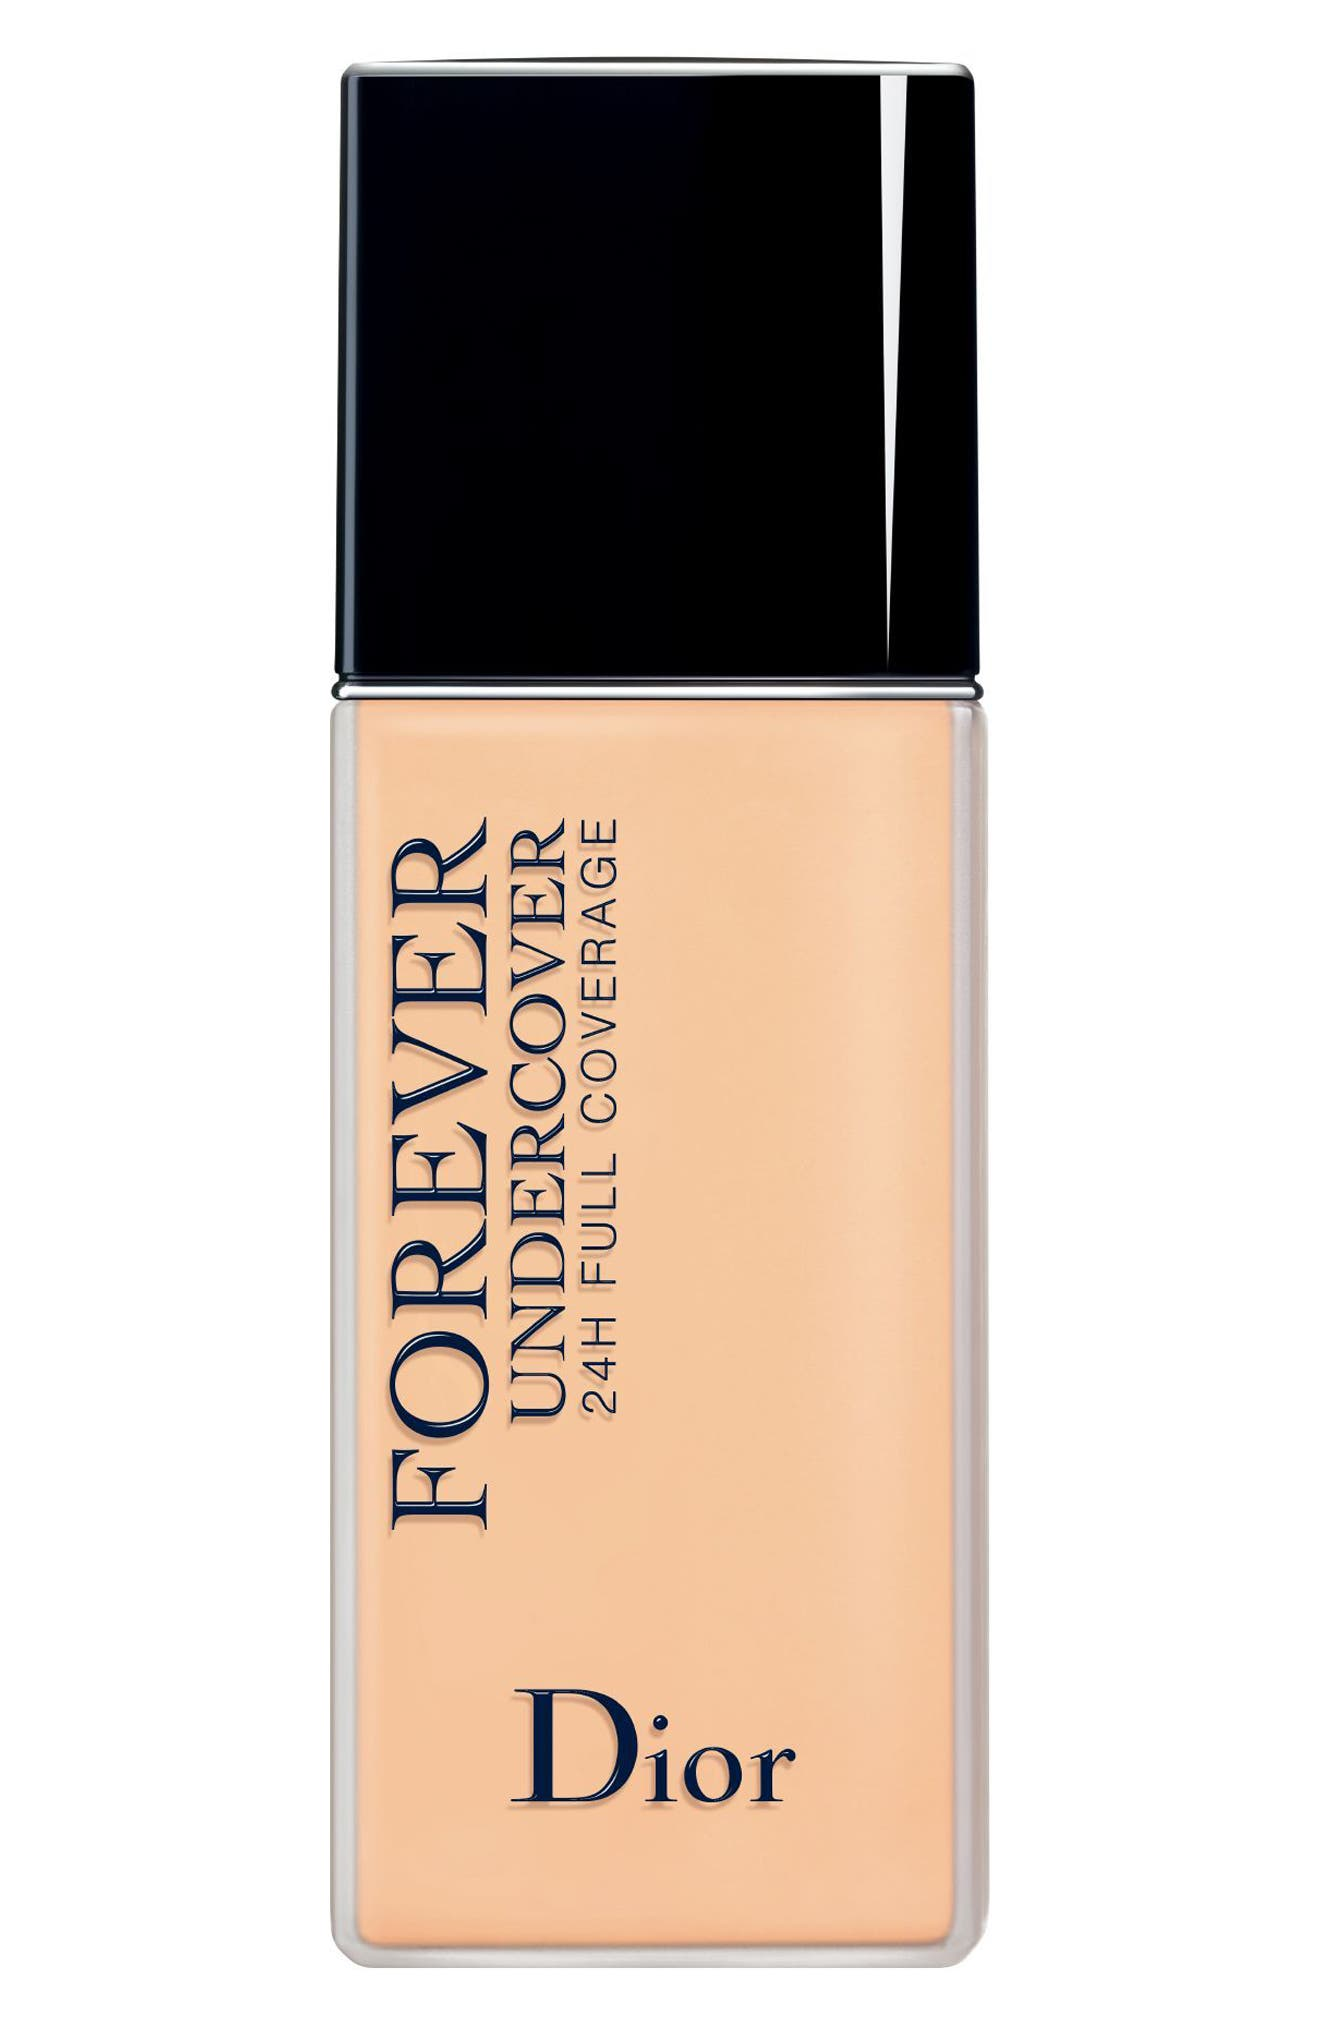 Dior Diorskin Forever Undercover 24-Hour Full Coverage Water-Based Foundation - 021 Linen